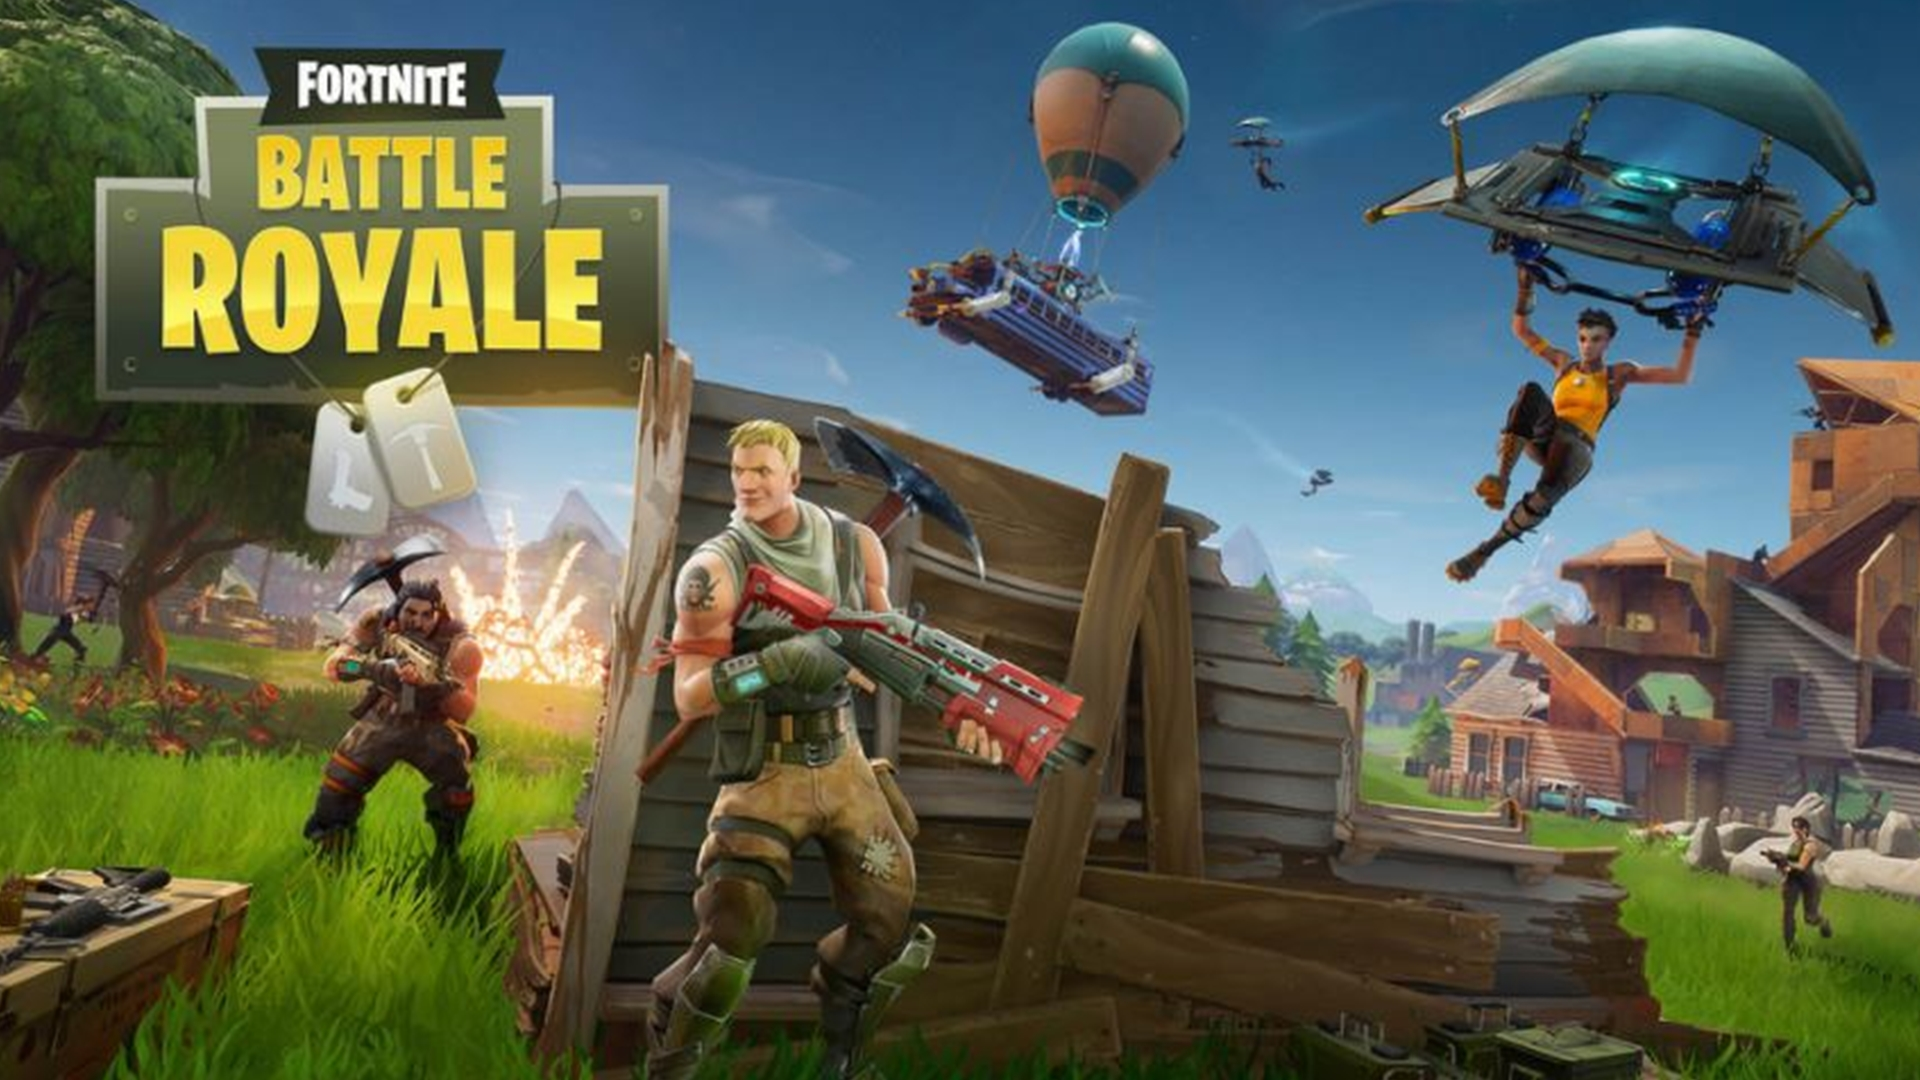 'Fortnite's Tim Sweeney says wall separating consoles will come down